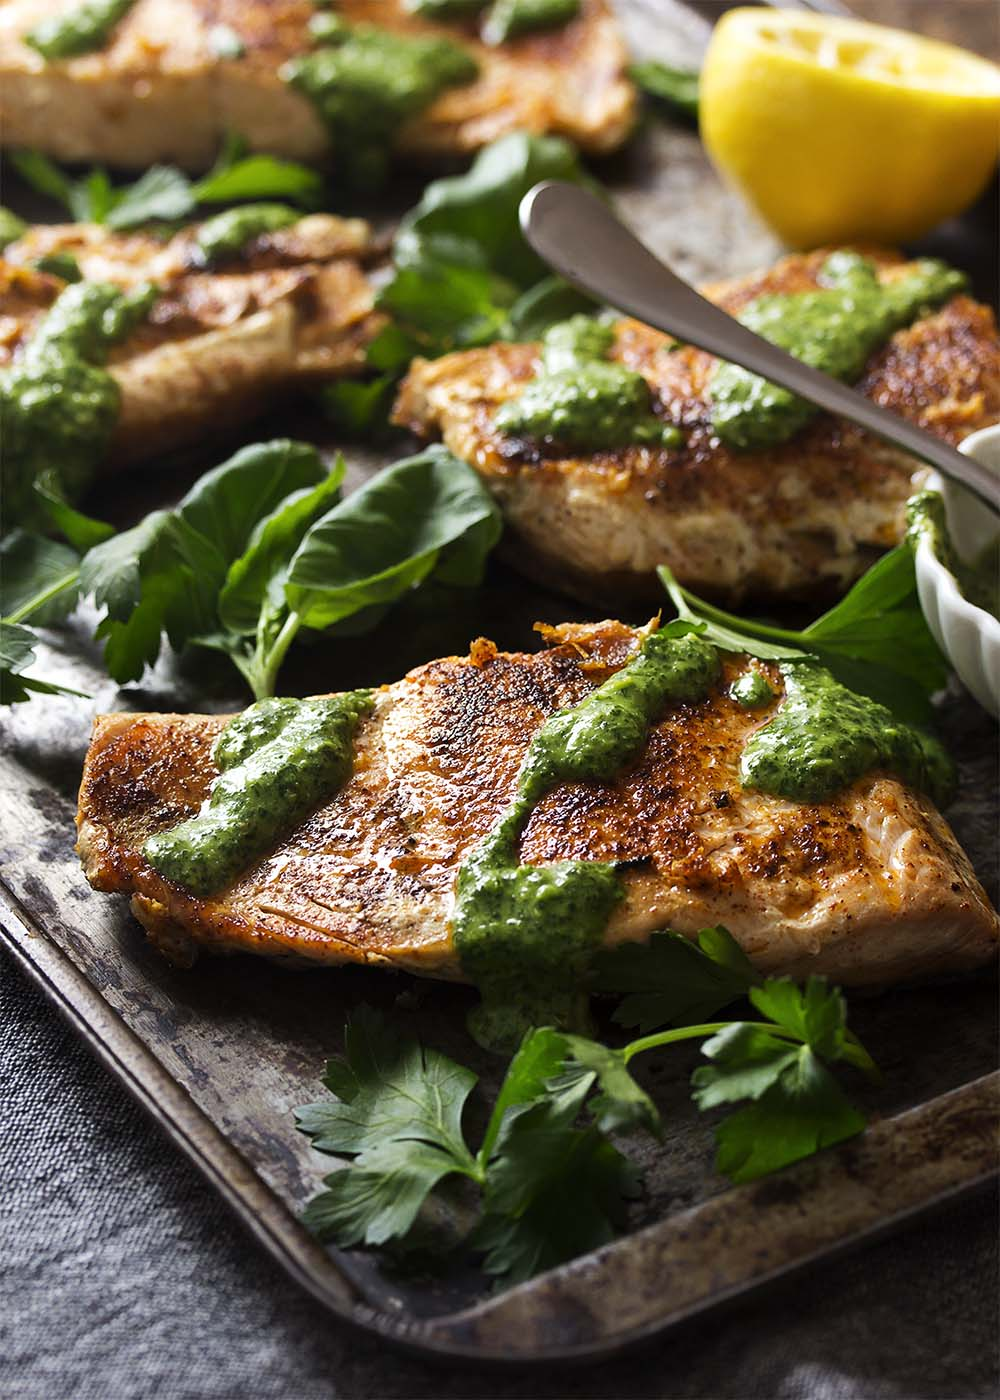 Golden brown salmon fillets on a tray drizzled with green sauce.